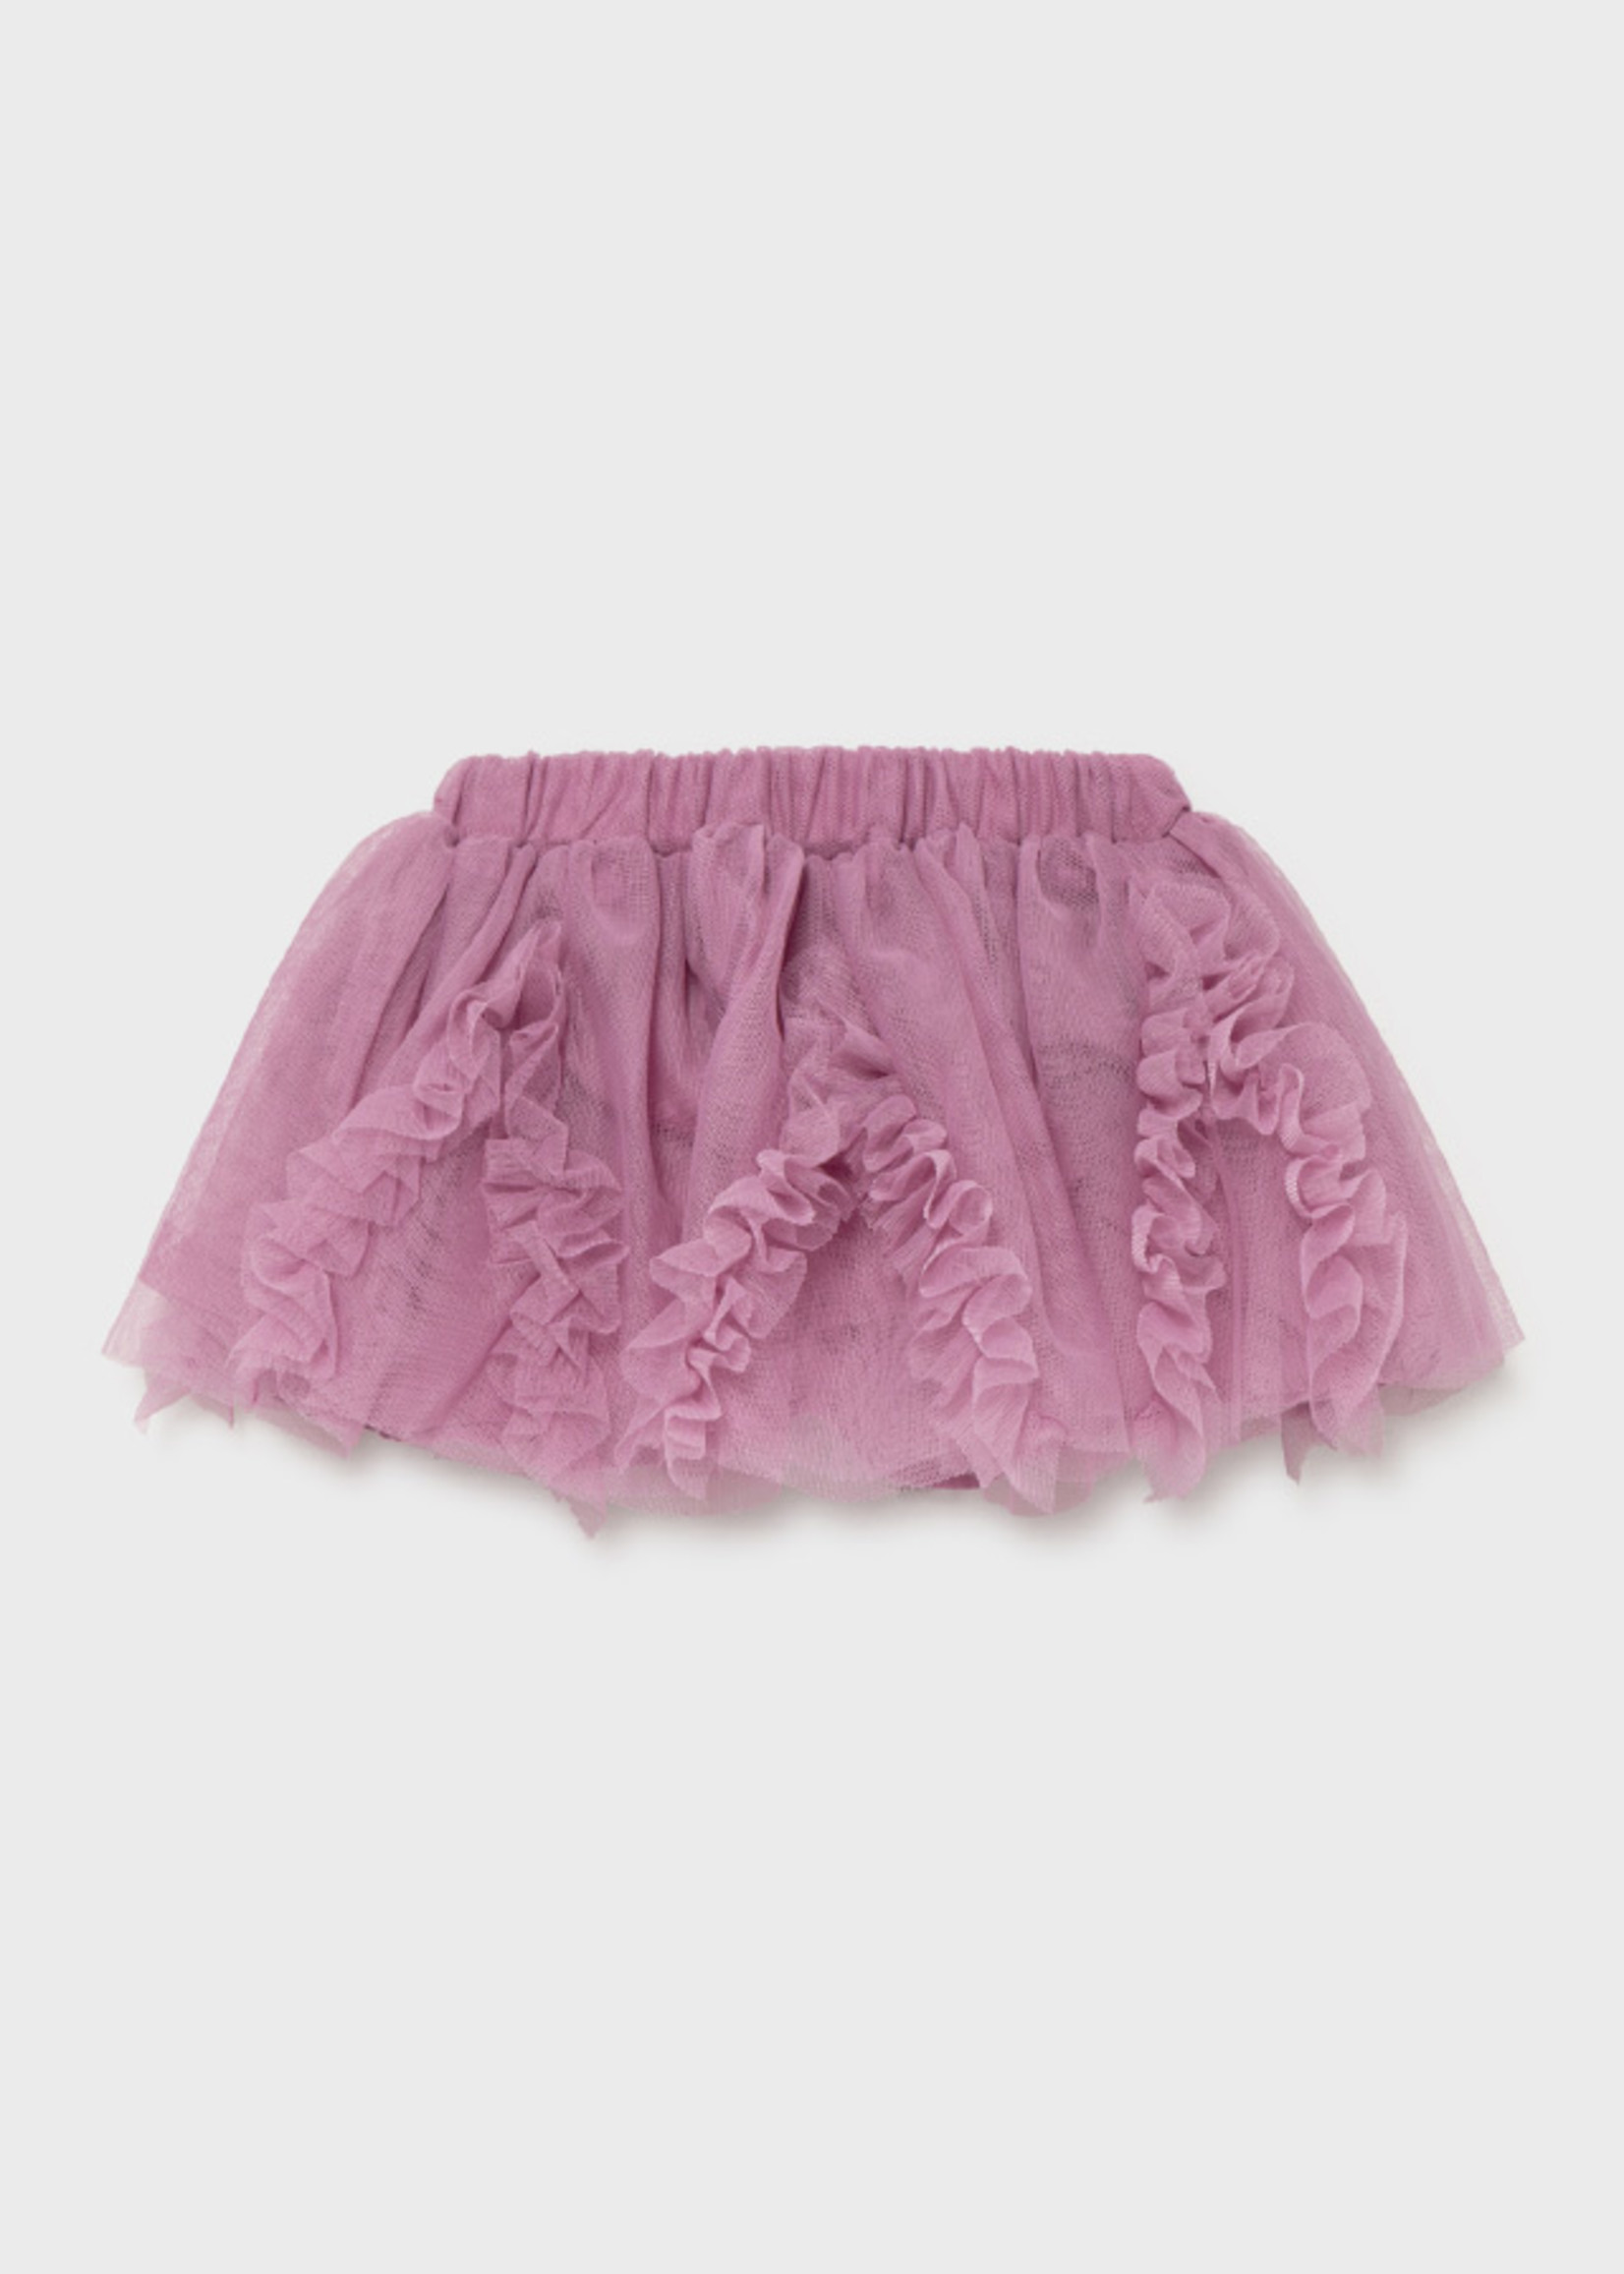 Mayoral Mayoral tulle skirt mauve